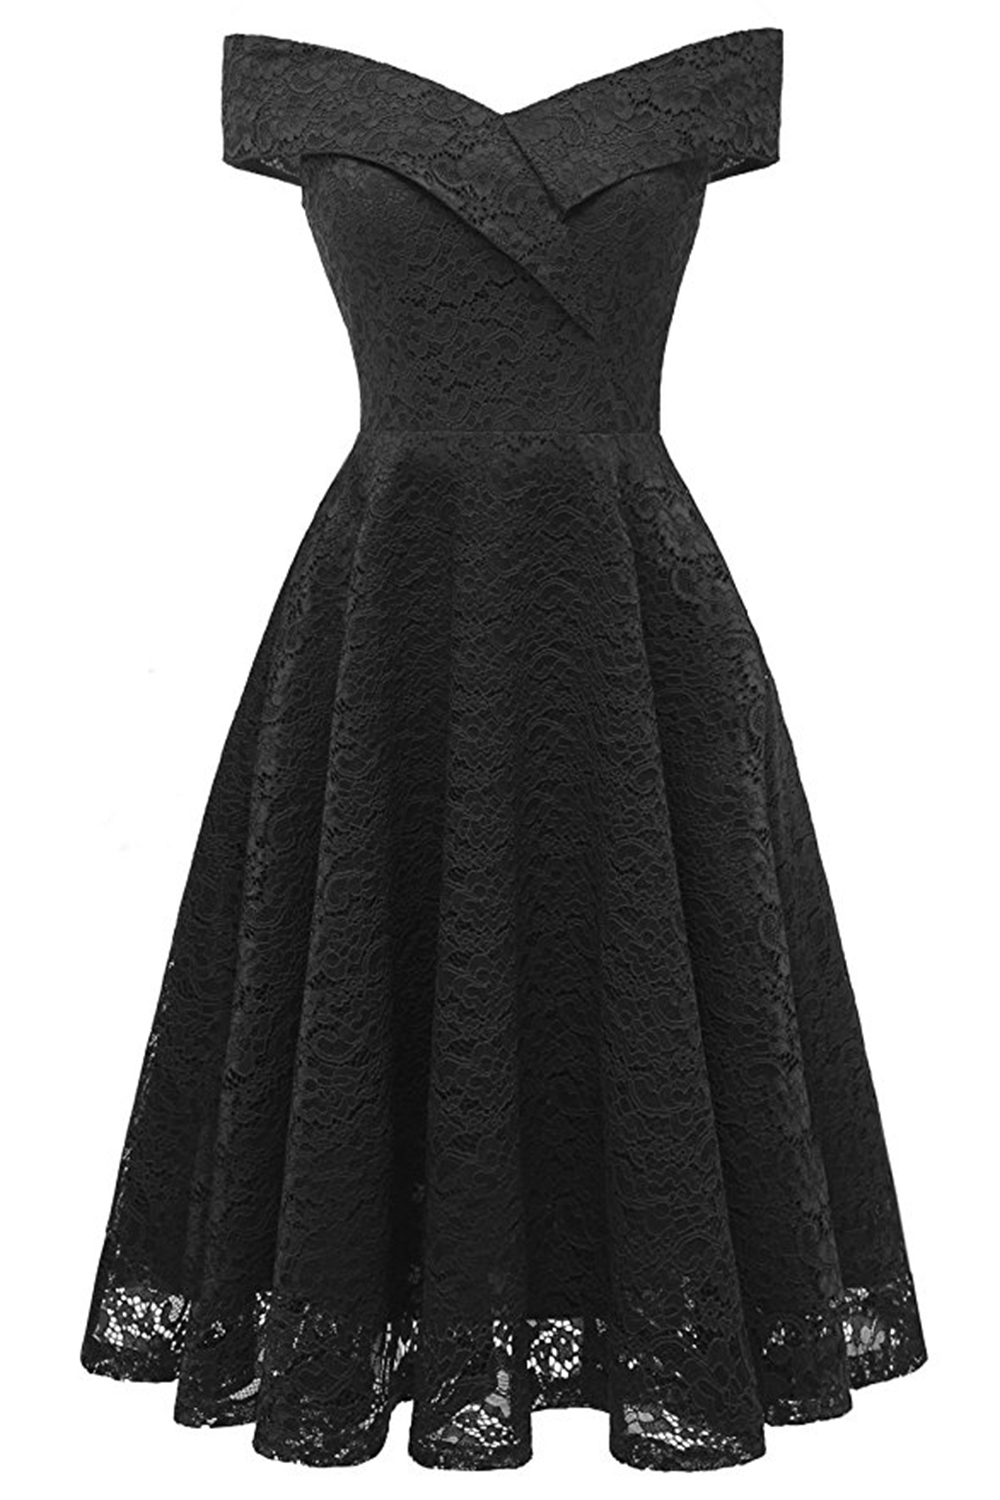 Cocktail Dresses elegant formal party dress A-Line V-Neckline lace Women 2018 Short Vestidos Sexy Women Homecoming Dresses 9